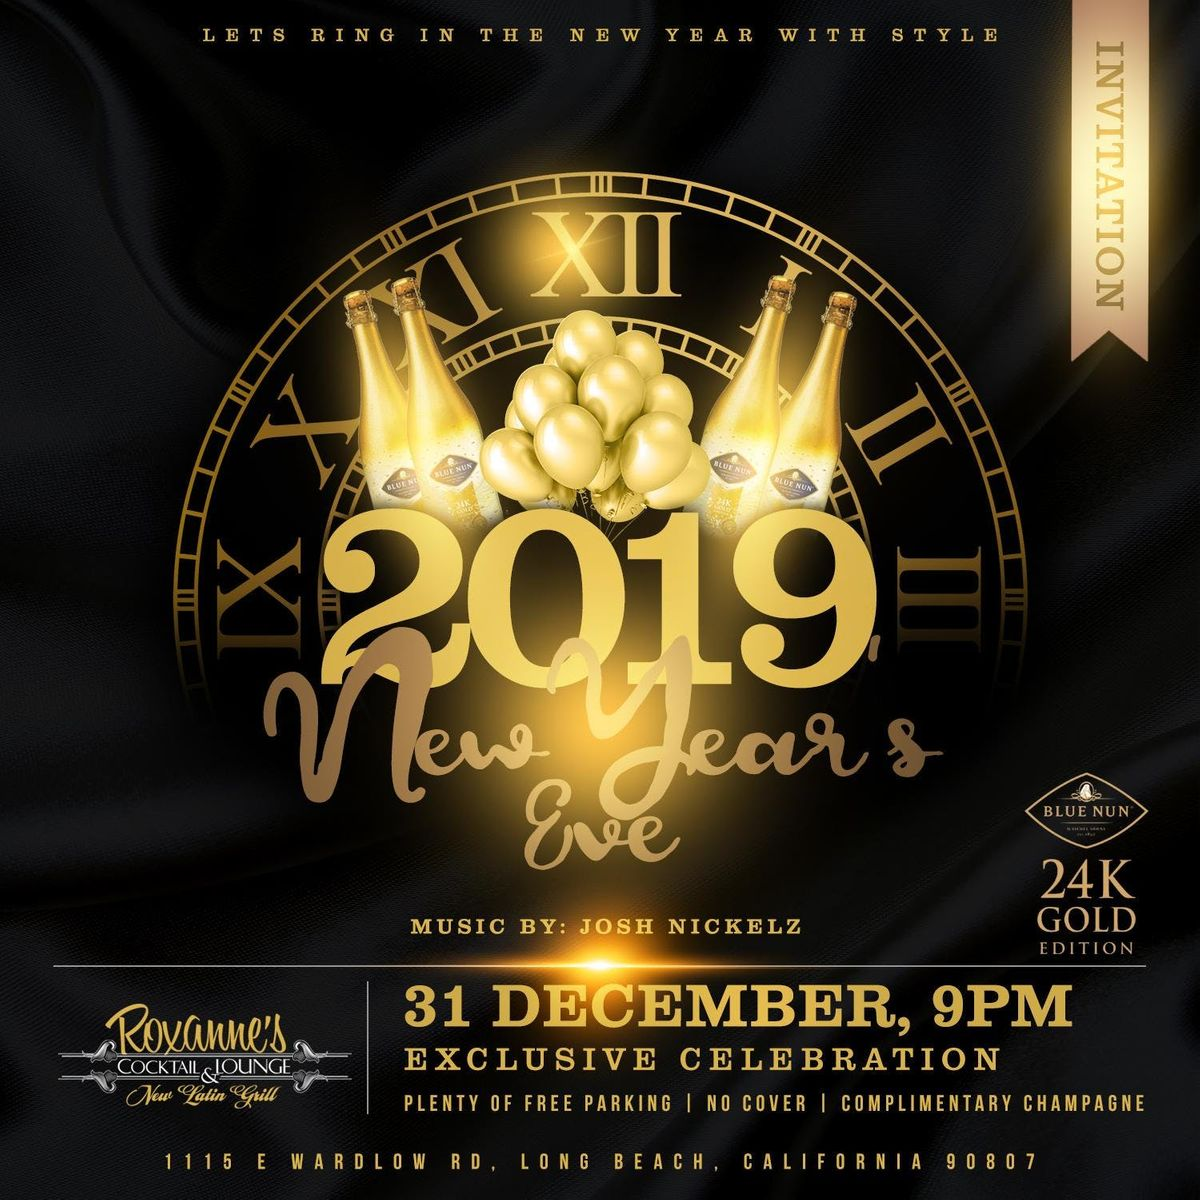 new years eve 2019 dance party midnight champagne toast at roxannes